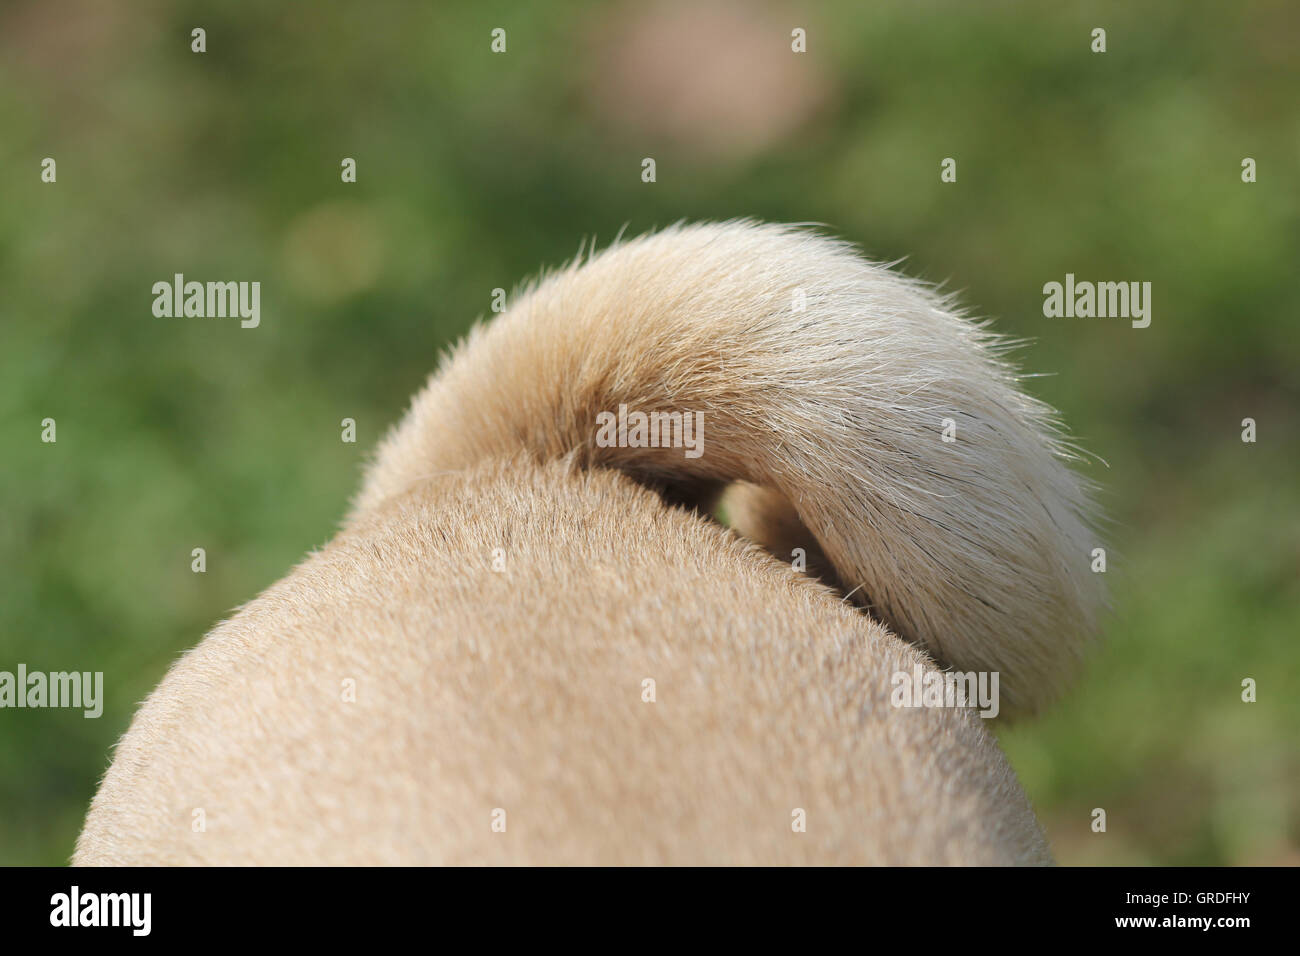 Backside Of A Beige Pug, Ring-Tailed - Stock Image